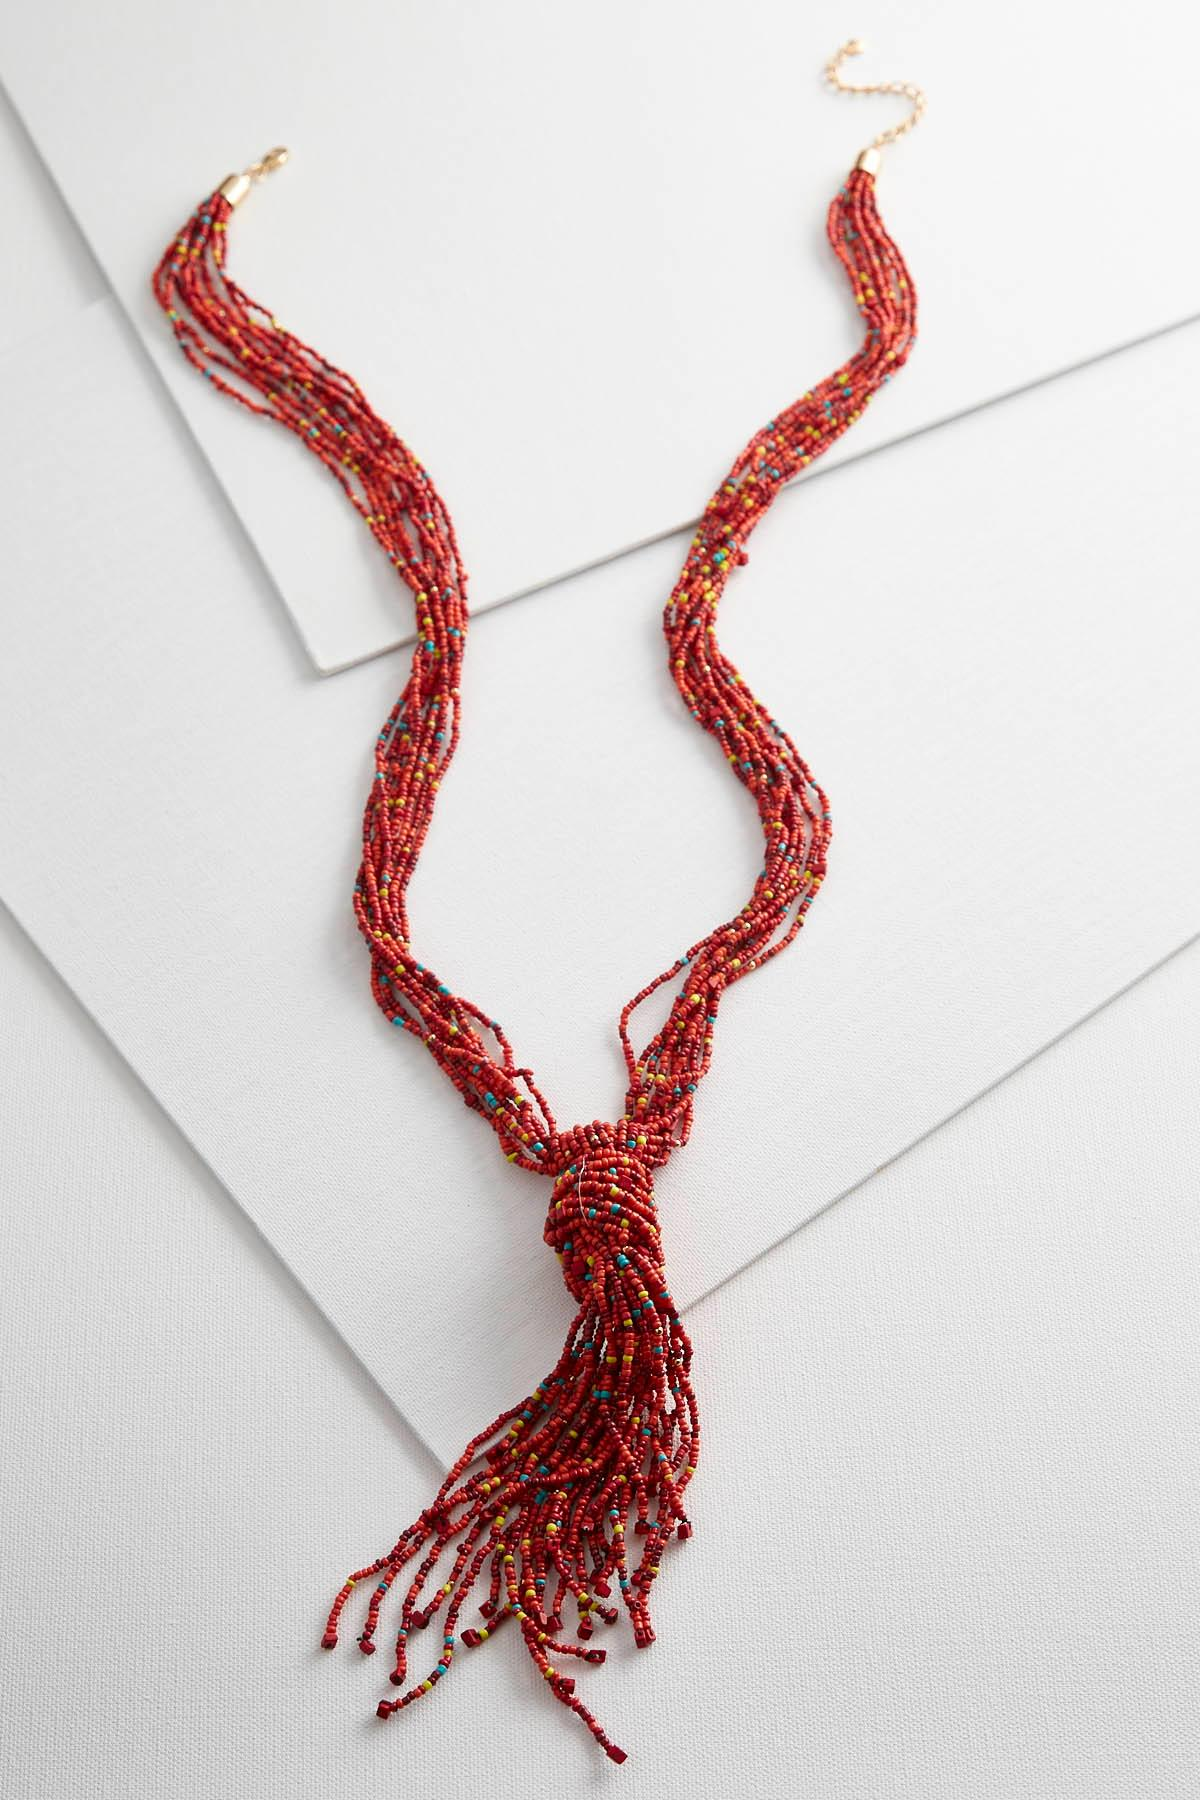 Knotted Seed Bead Necklace